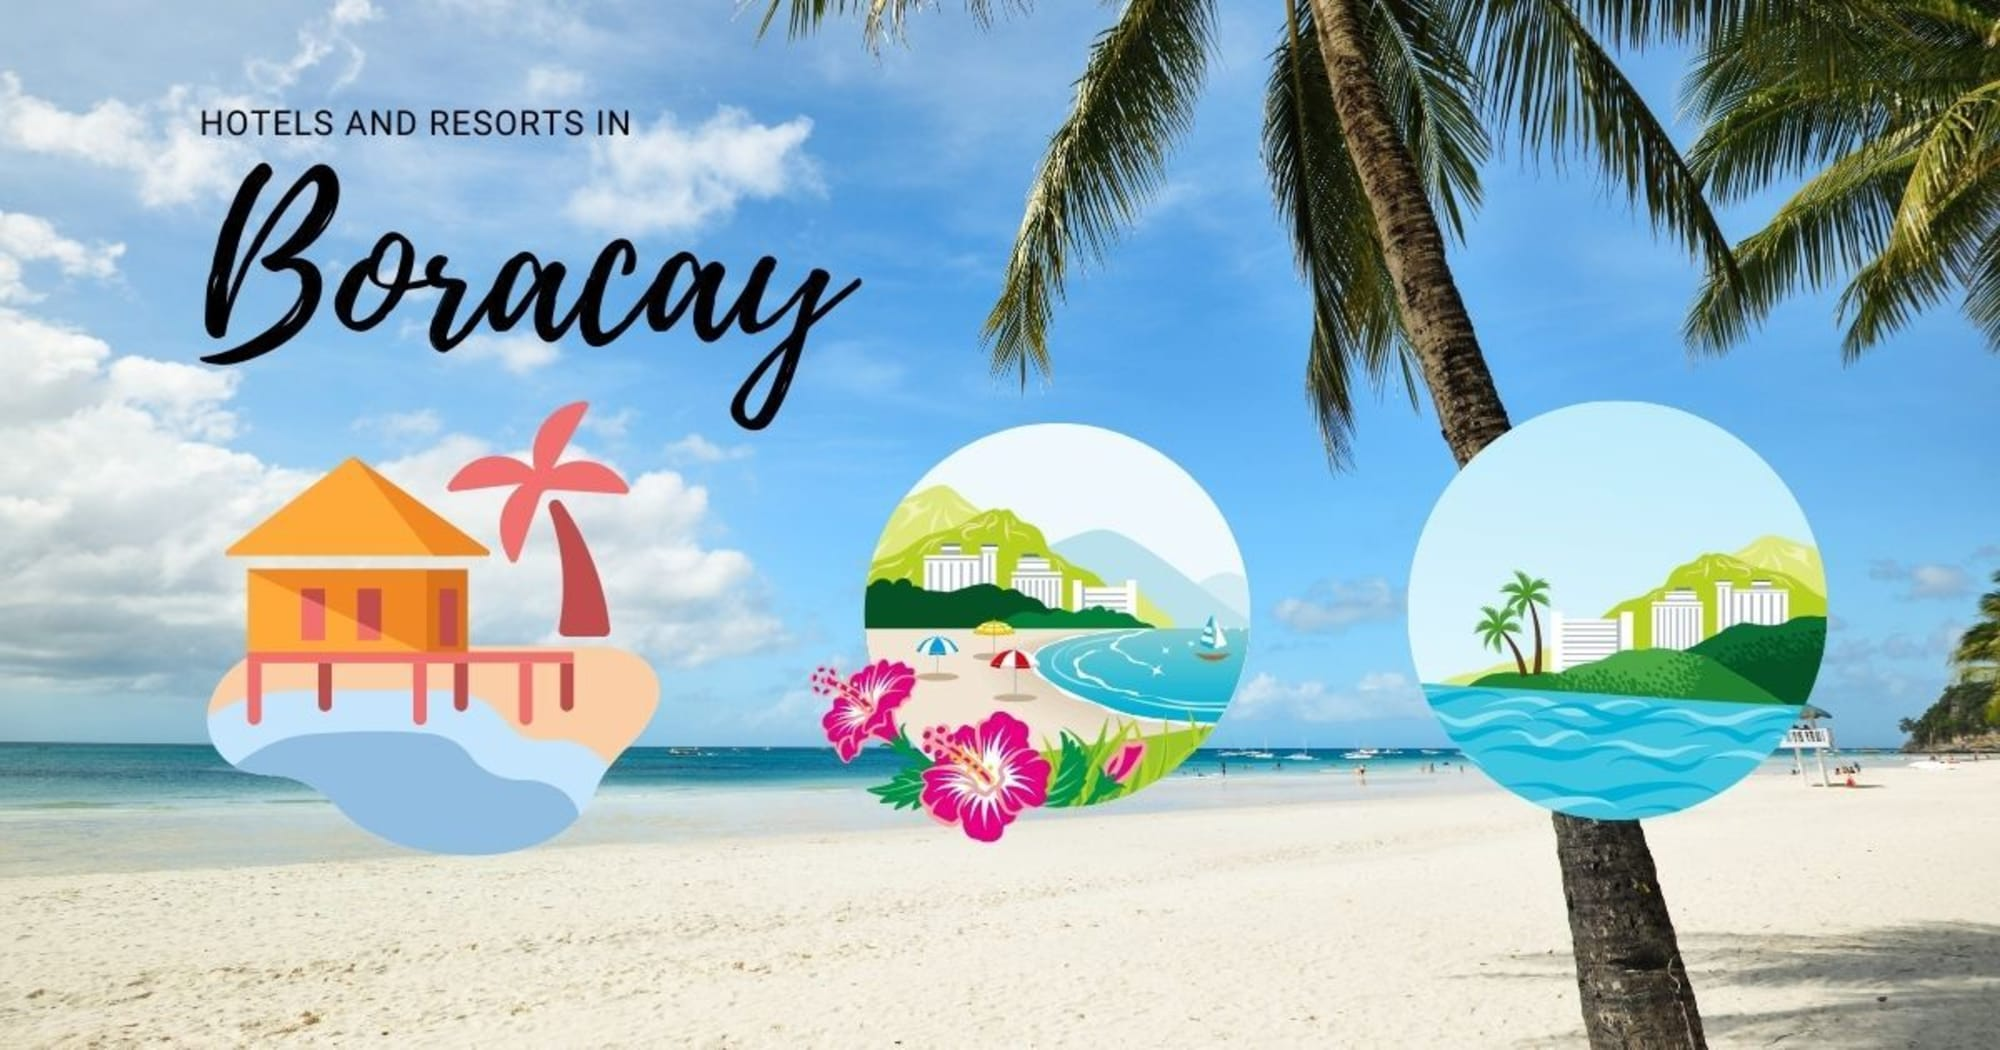 (UPDATED) 2021 Complete list, Easy to read, Alphabetical order, DOT-Accredited Accommodation Establishments in Boracay